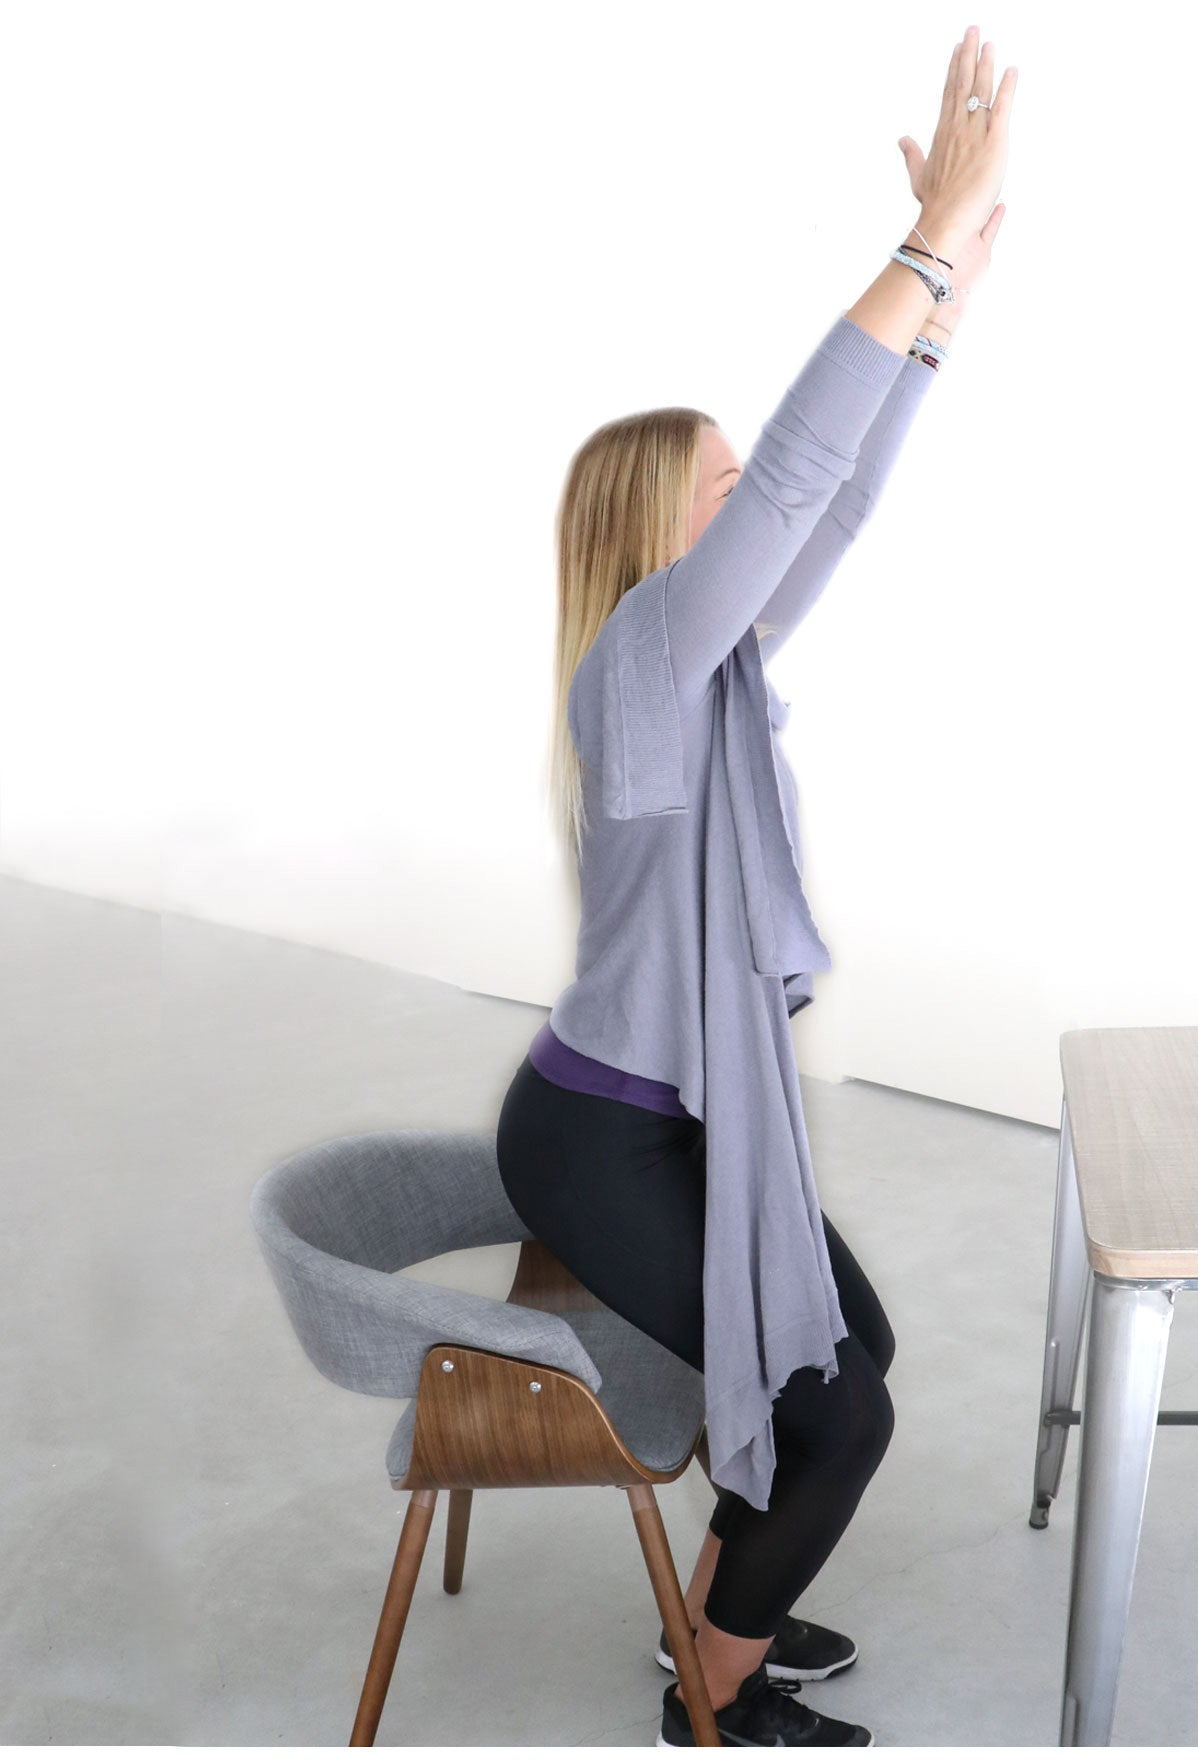 5. Chair Pose/Utkatasana